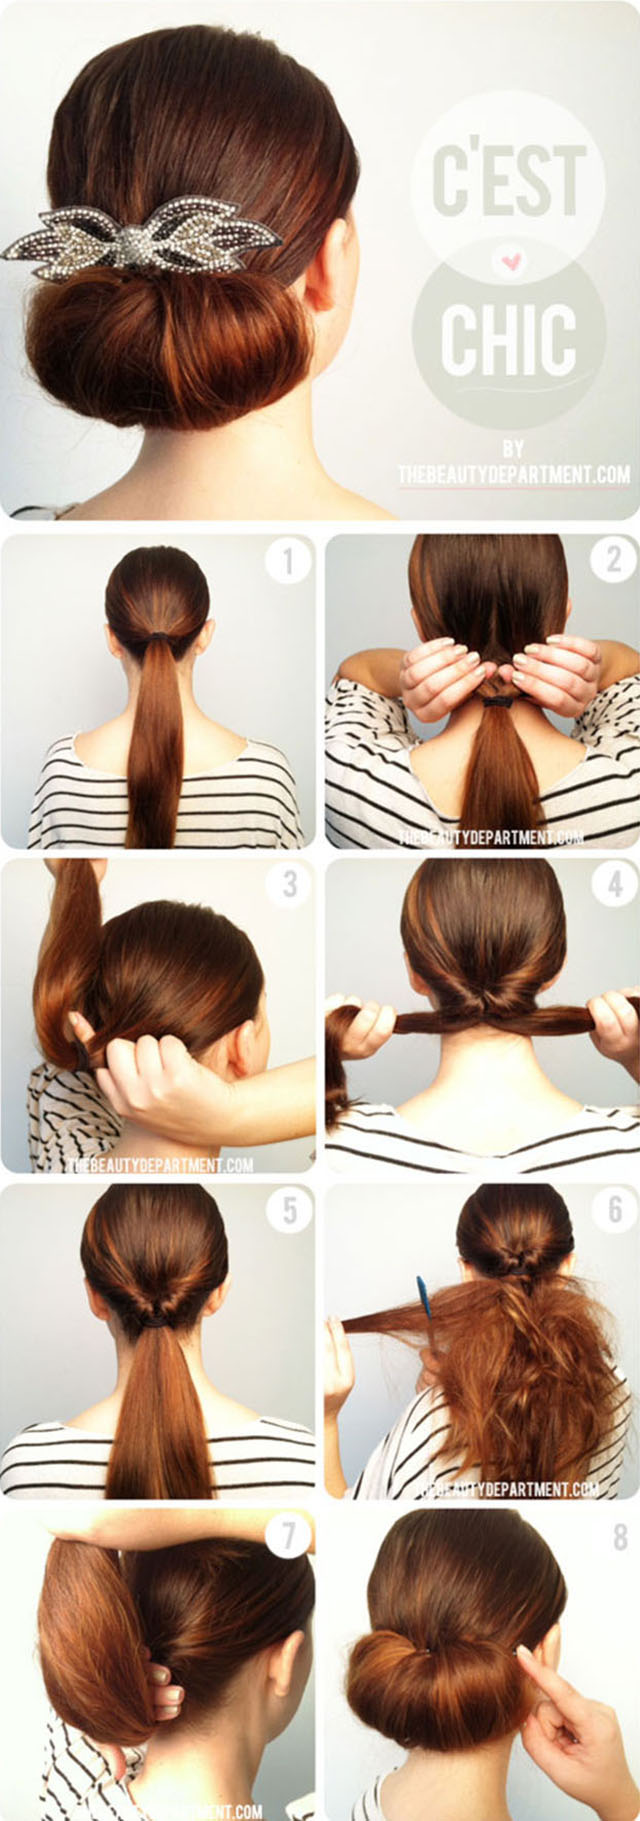 Easy and Fast DIY Hairstyle Tutorials 3